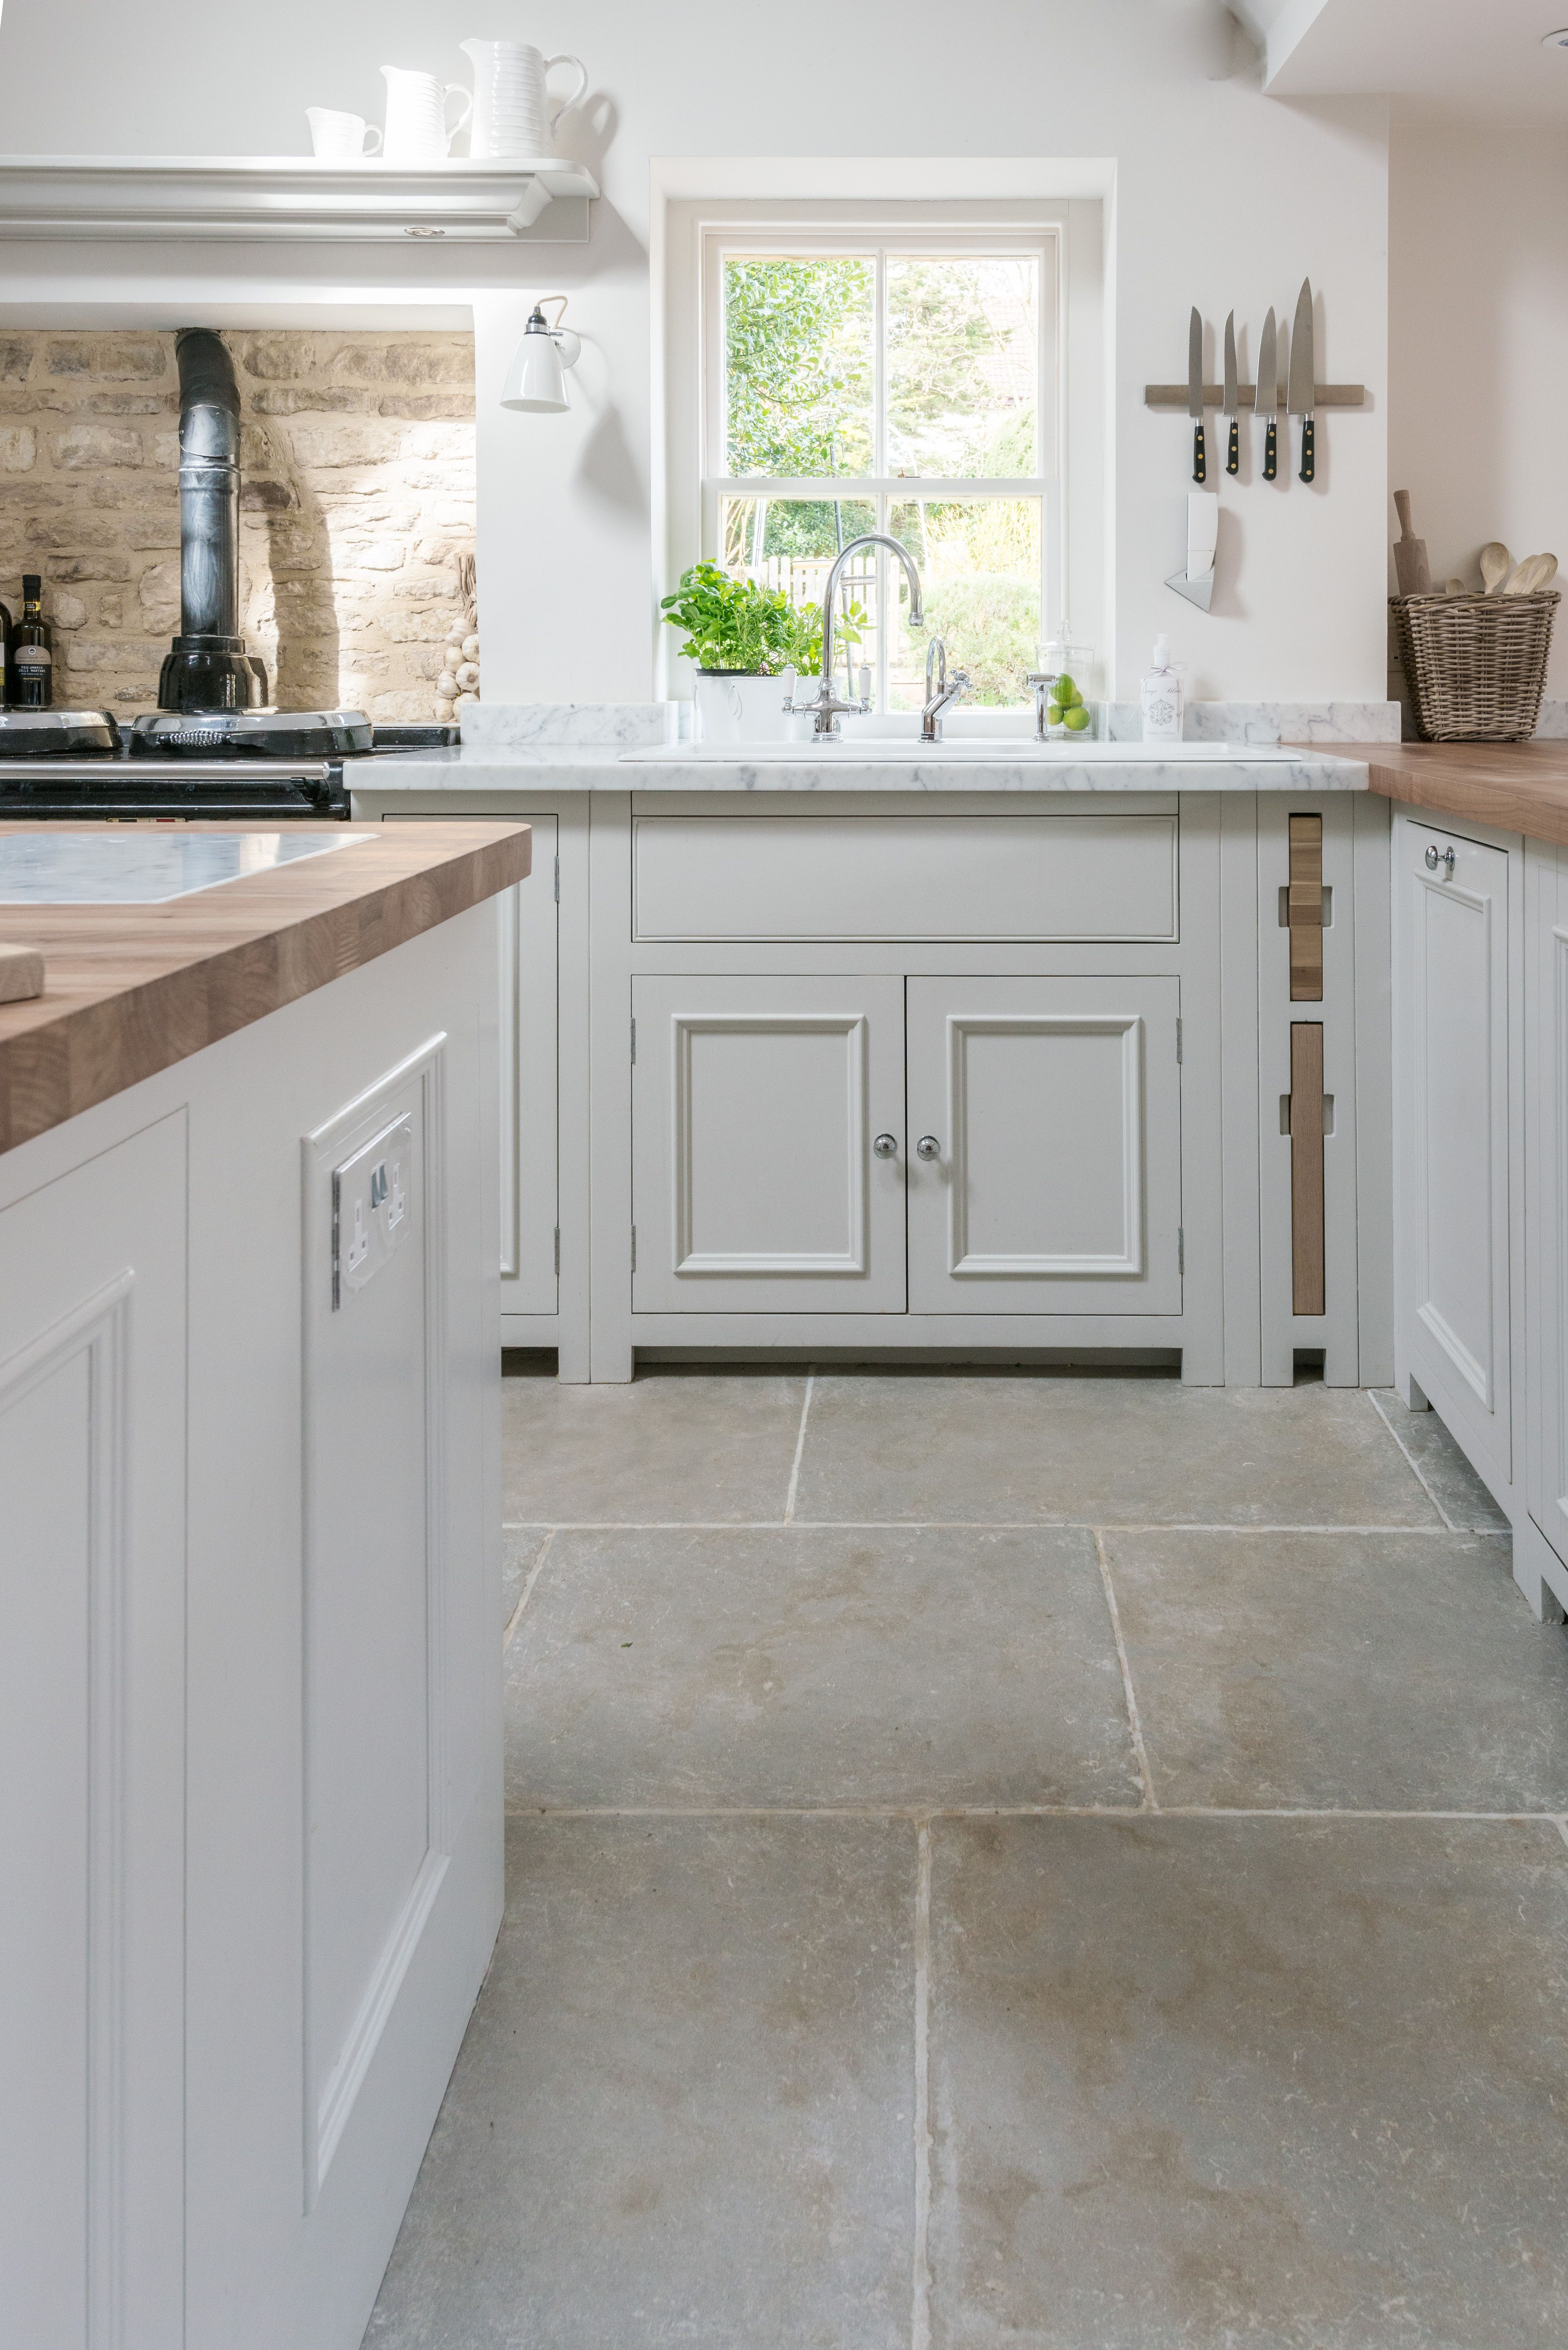 Classic Neptune Chichester Cabinetry Gives A Nod To The